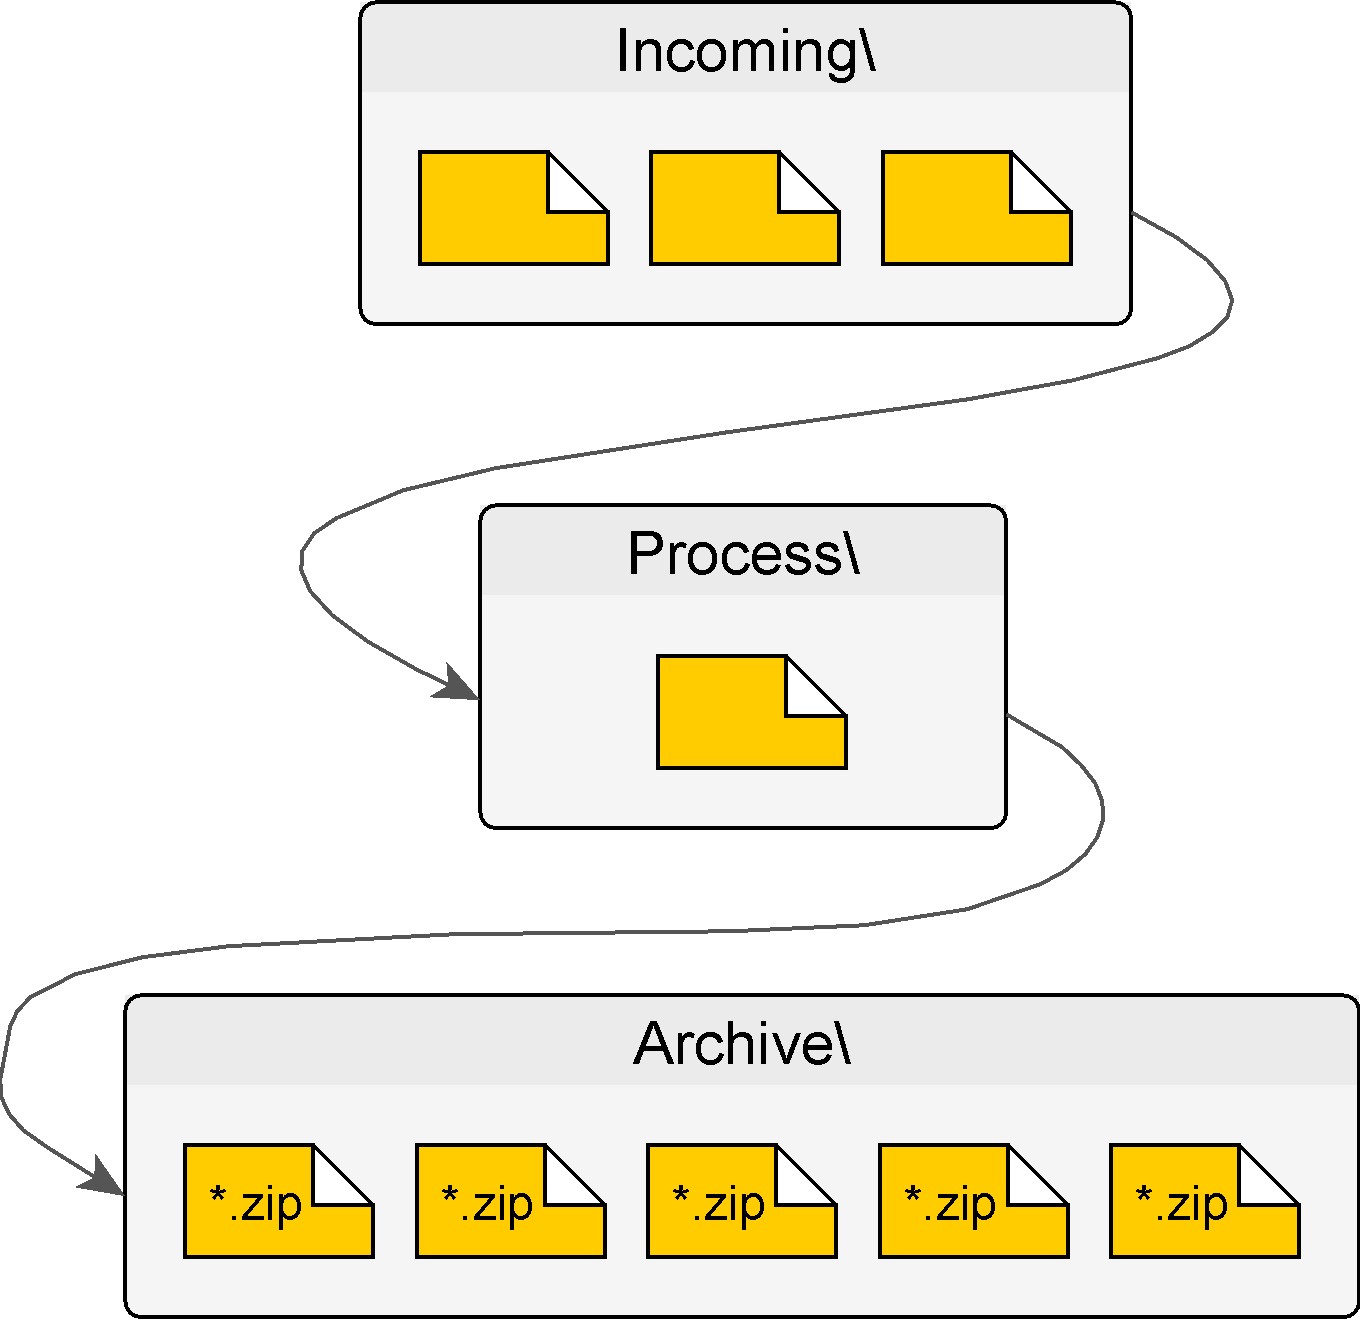 ProcessIncomingFiles Overview